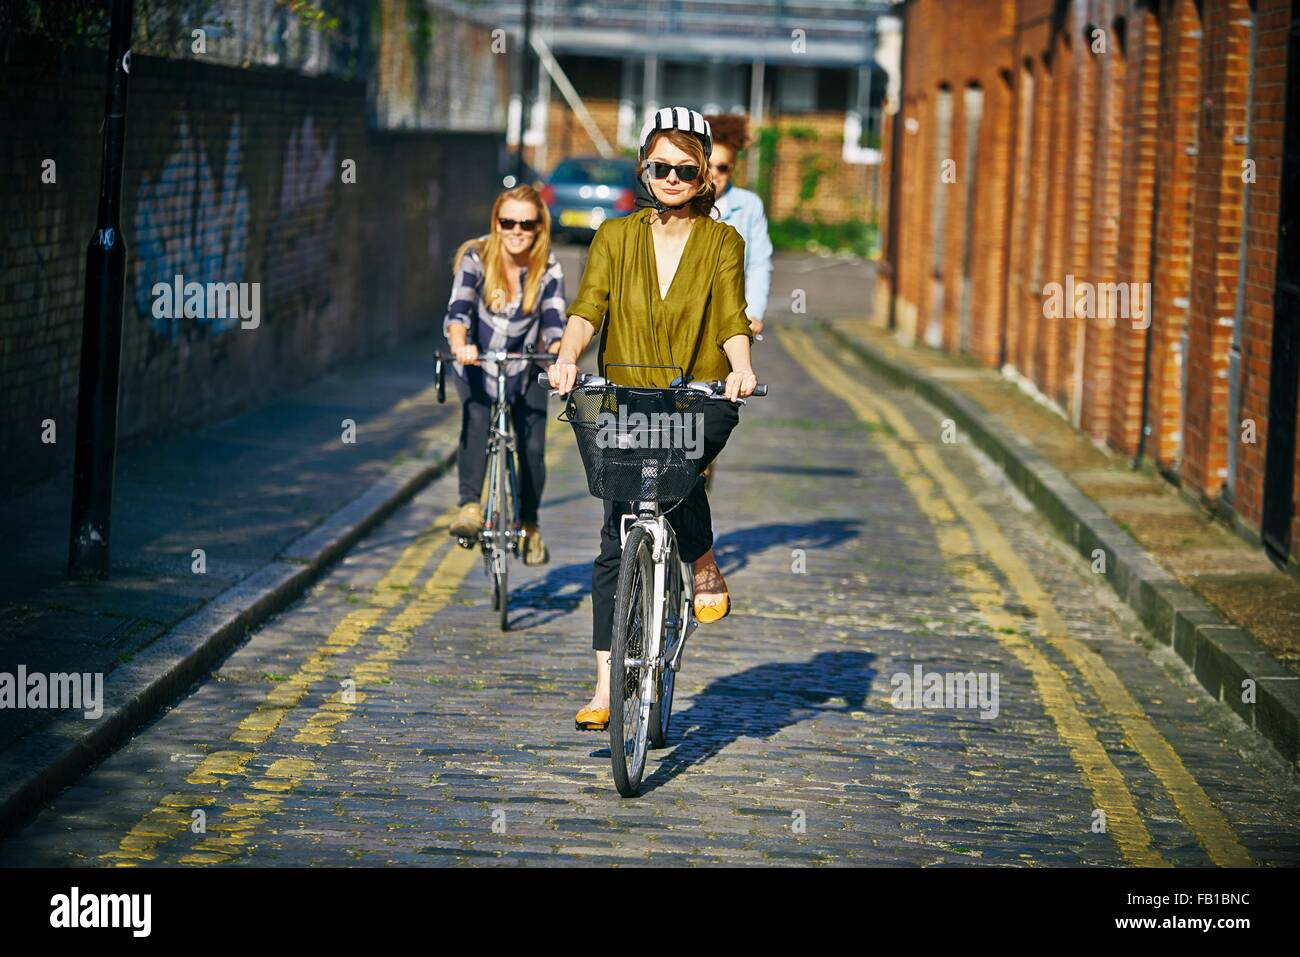 Front view of women wearing sunglasses  riding bicycles on cobblestone road - Stock Image